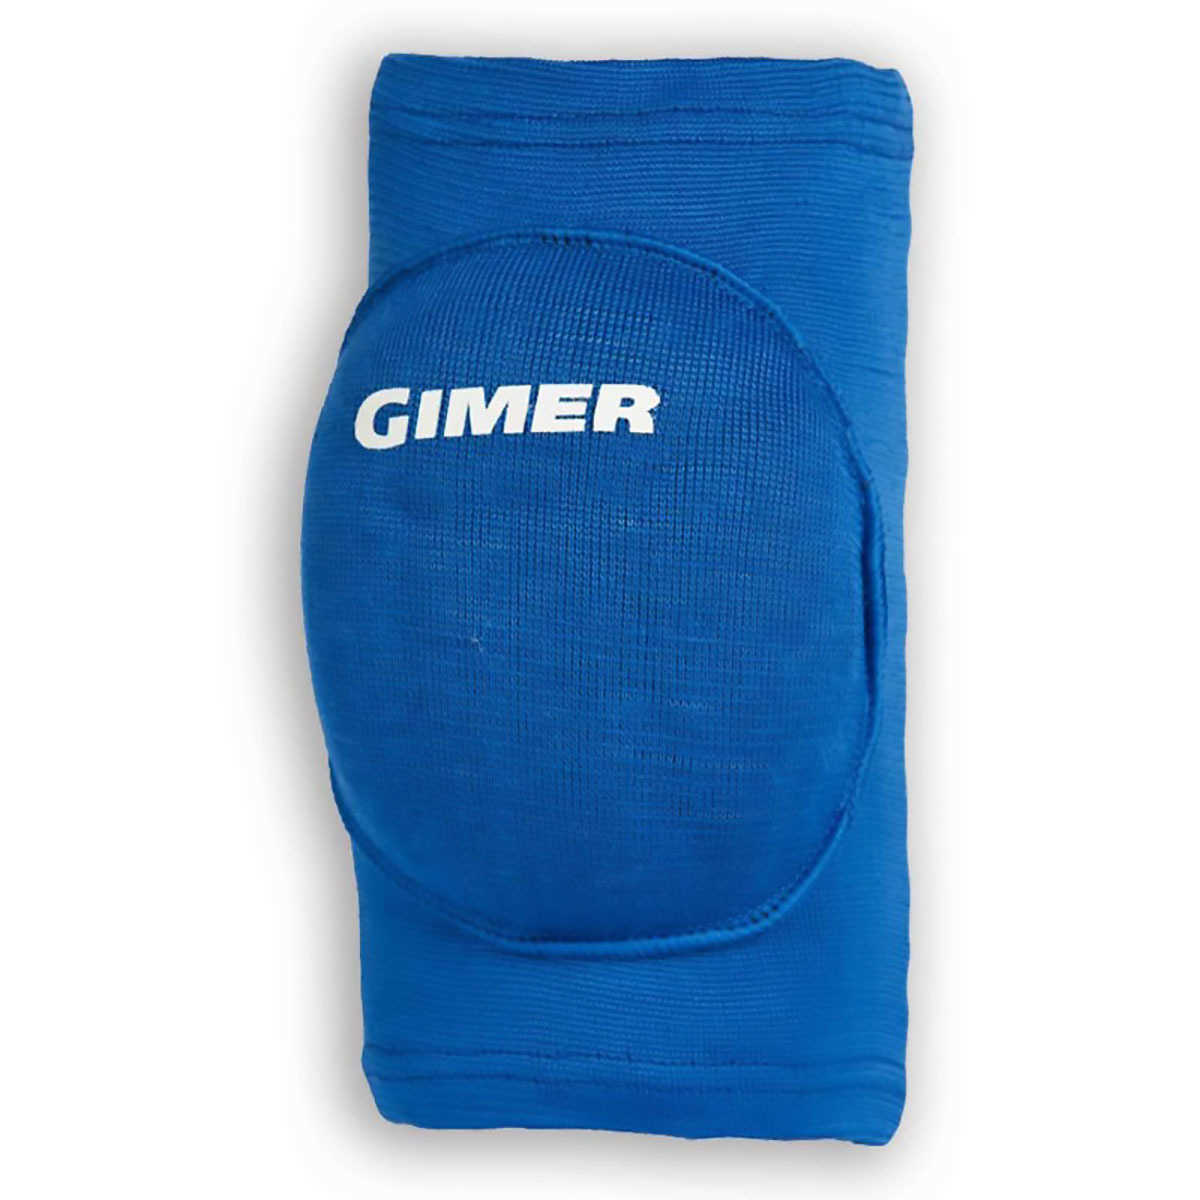 MAG_GIMER 7/523 KNEE KNEE KNEE ADULT 5 PIECES Pallavolo ACCESSORI SPORTIVI 2b0457